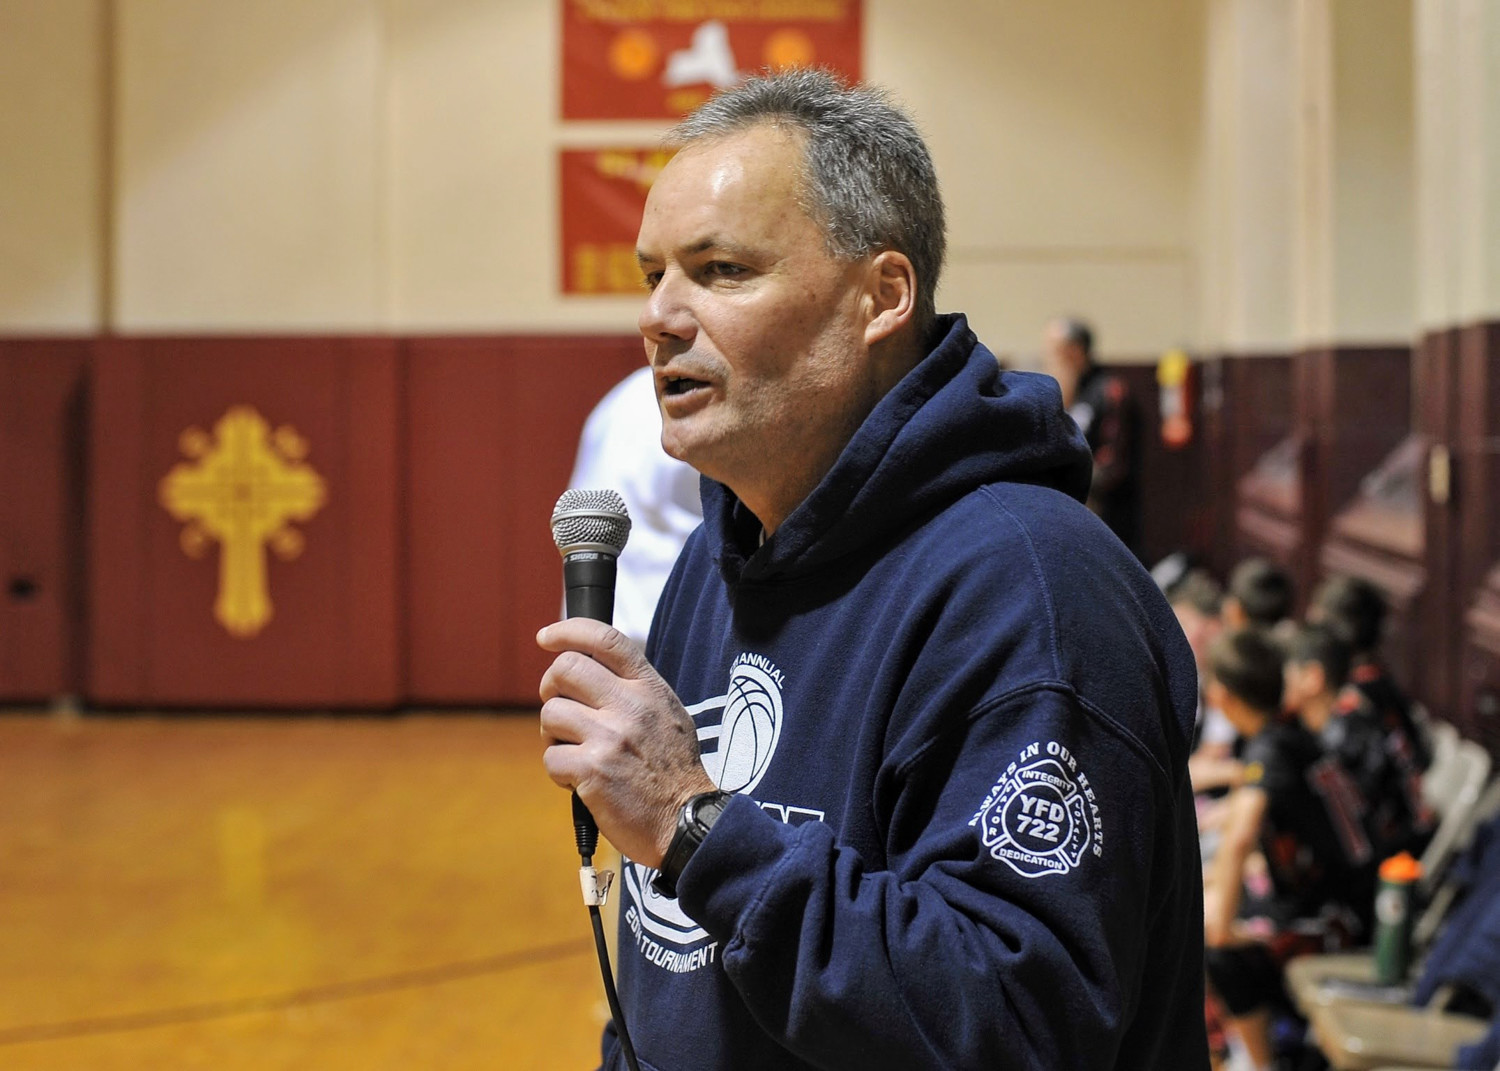 Pat Woods, head coach of the St. Margaret's varsity boys basketball team, along with tournament director Billy McLoughlin, have made the Pat Joyce Memorial Basketball Tournament a yearly fixture in Riverdale.